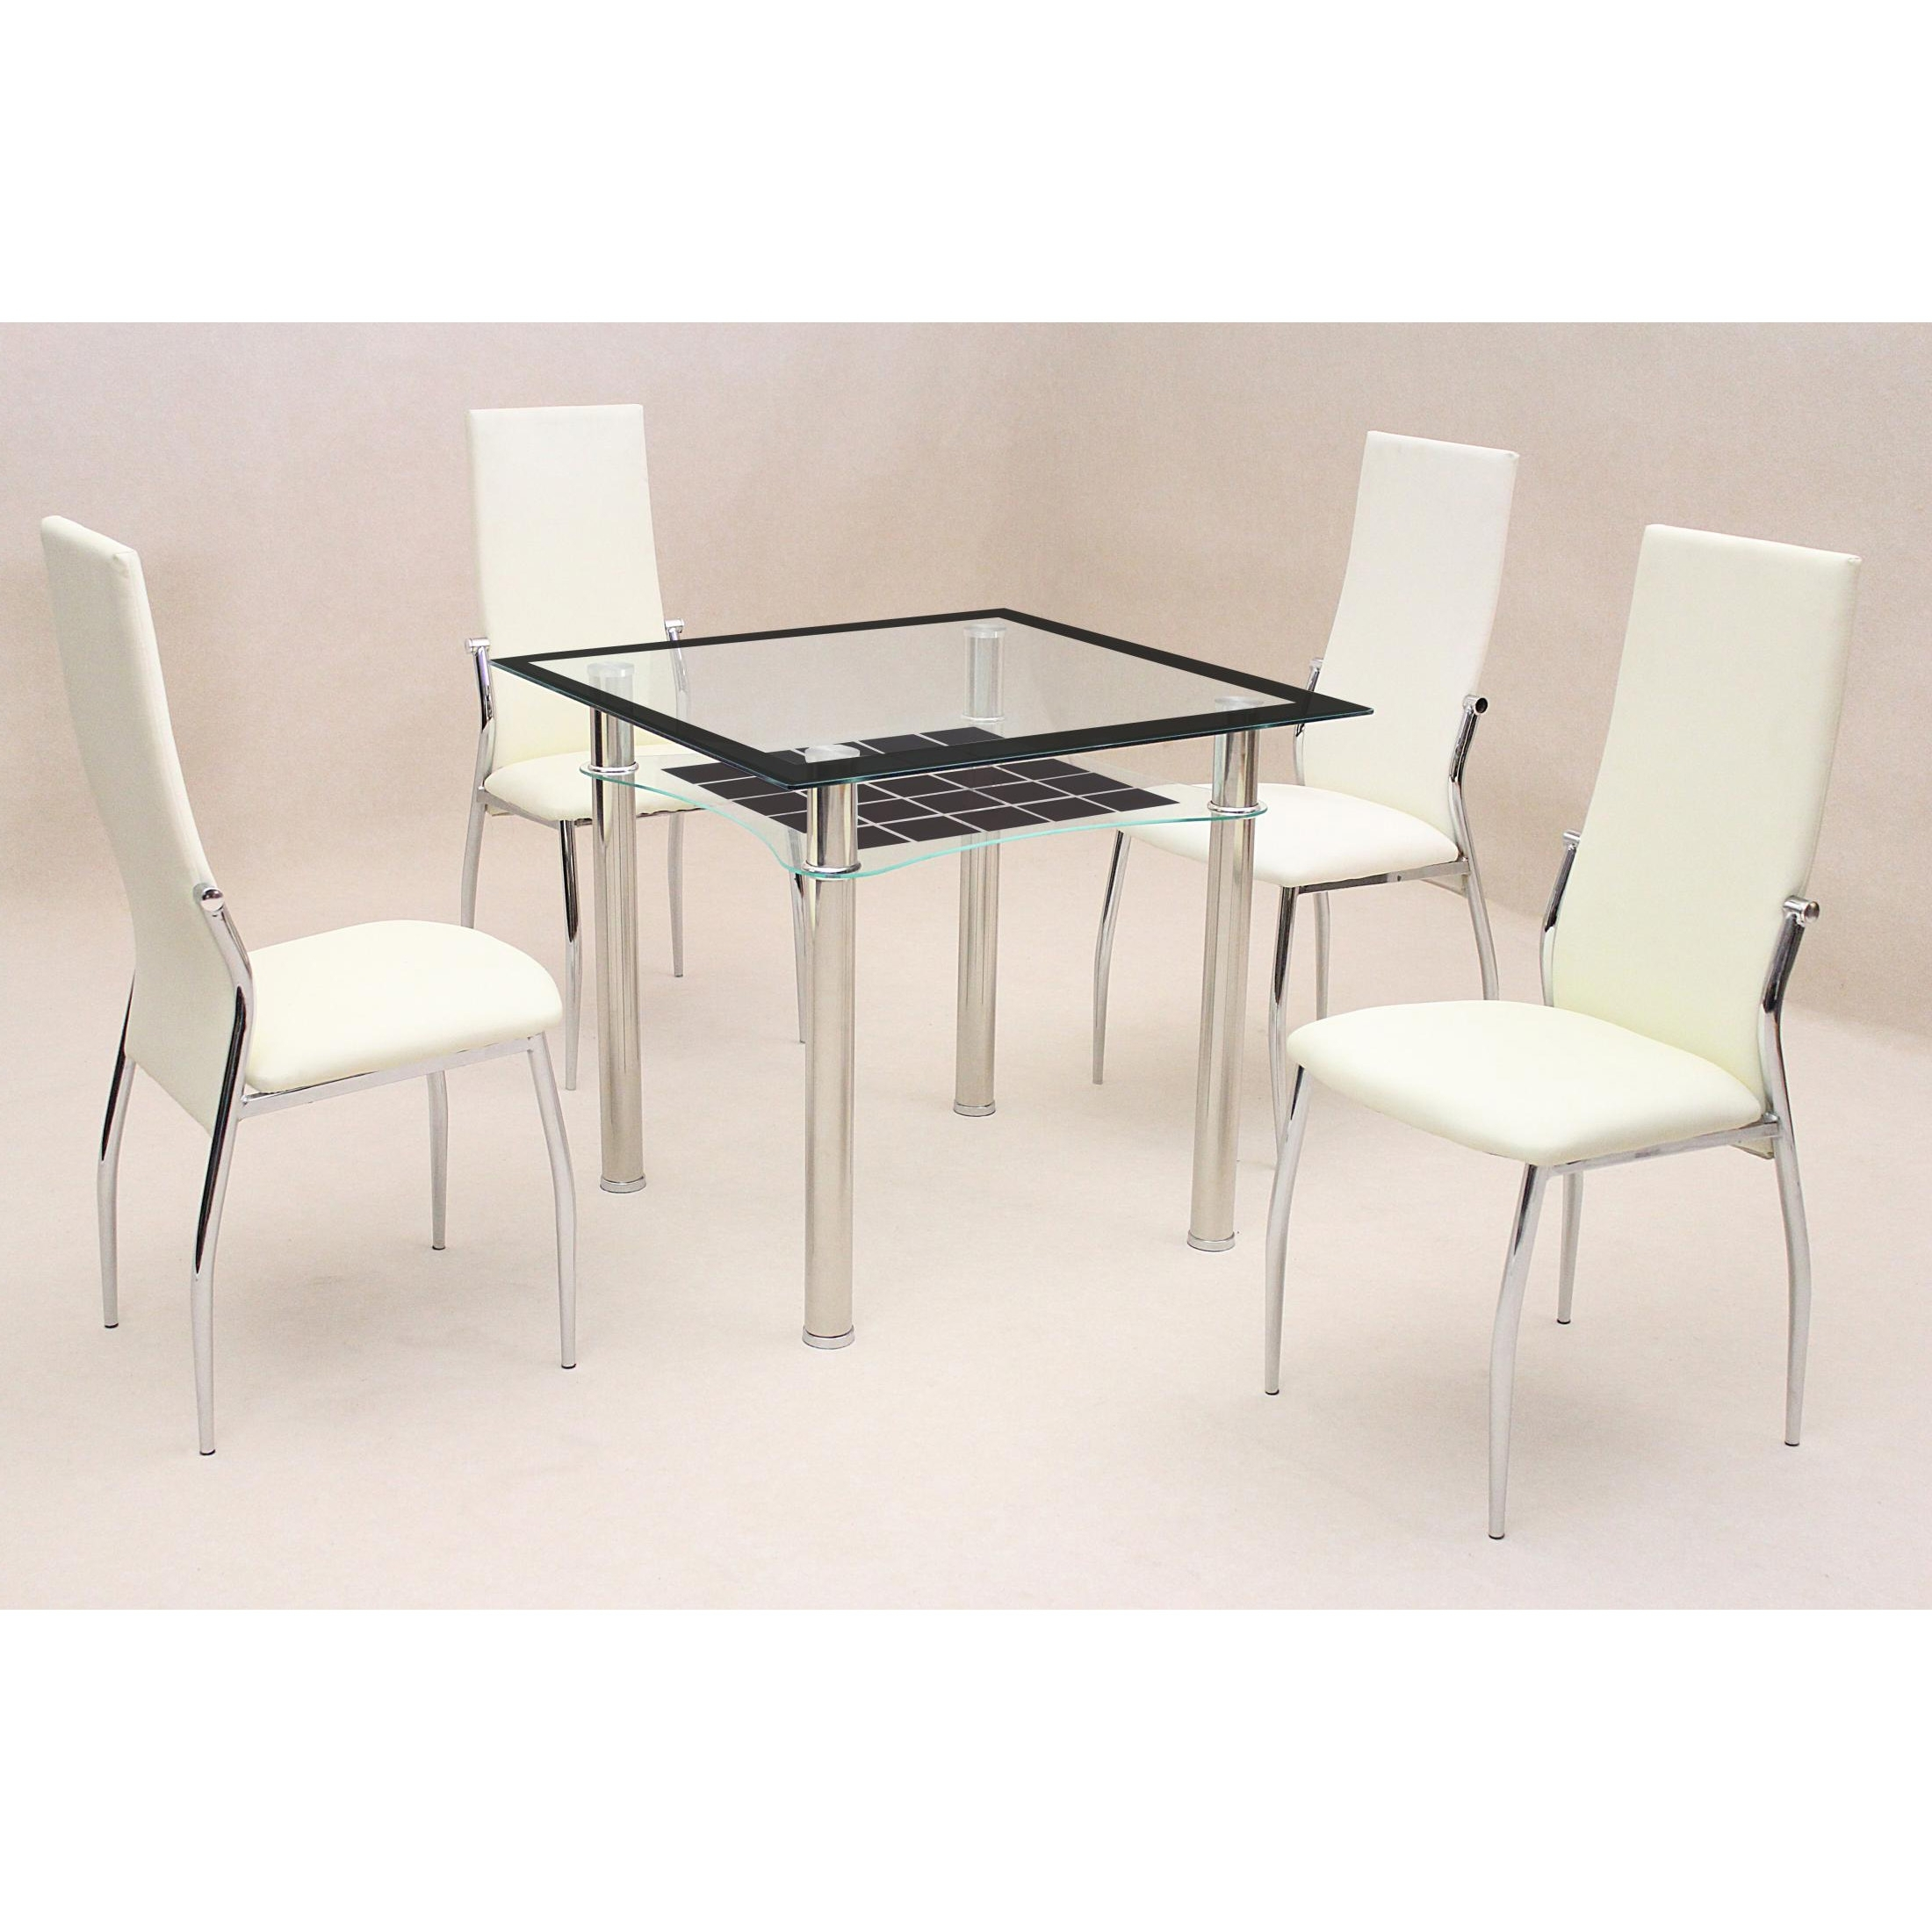 Lazio Dining Tables In Newest Jazo Black Dining Table Chrome 4 Lazio Chairs (View 6 of 25)